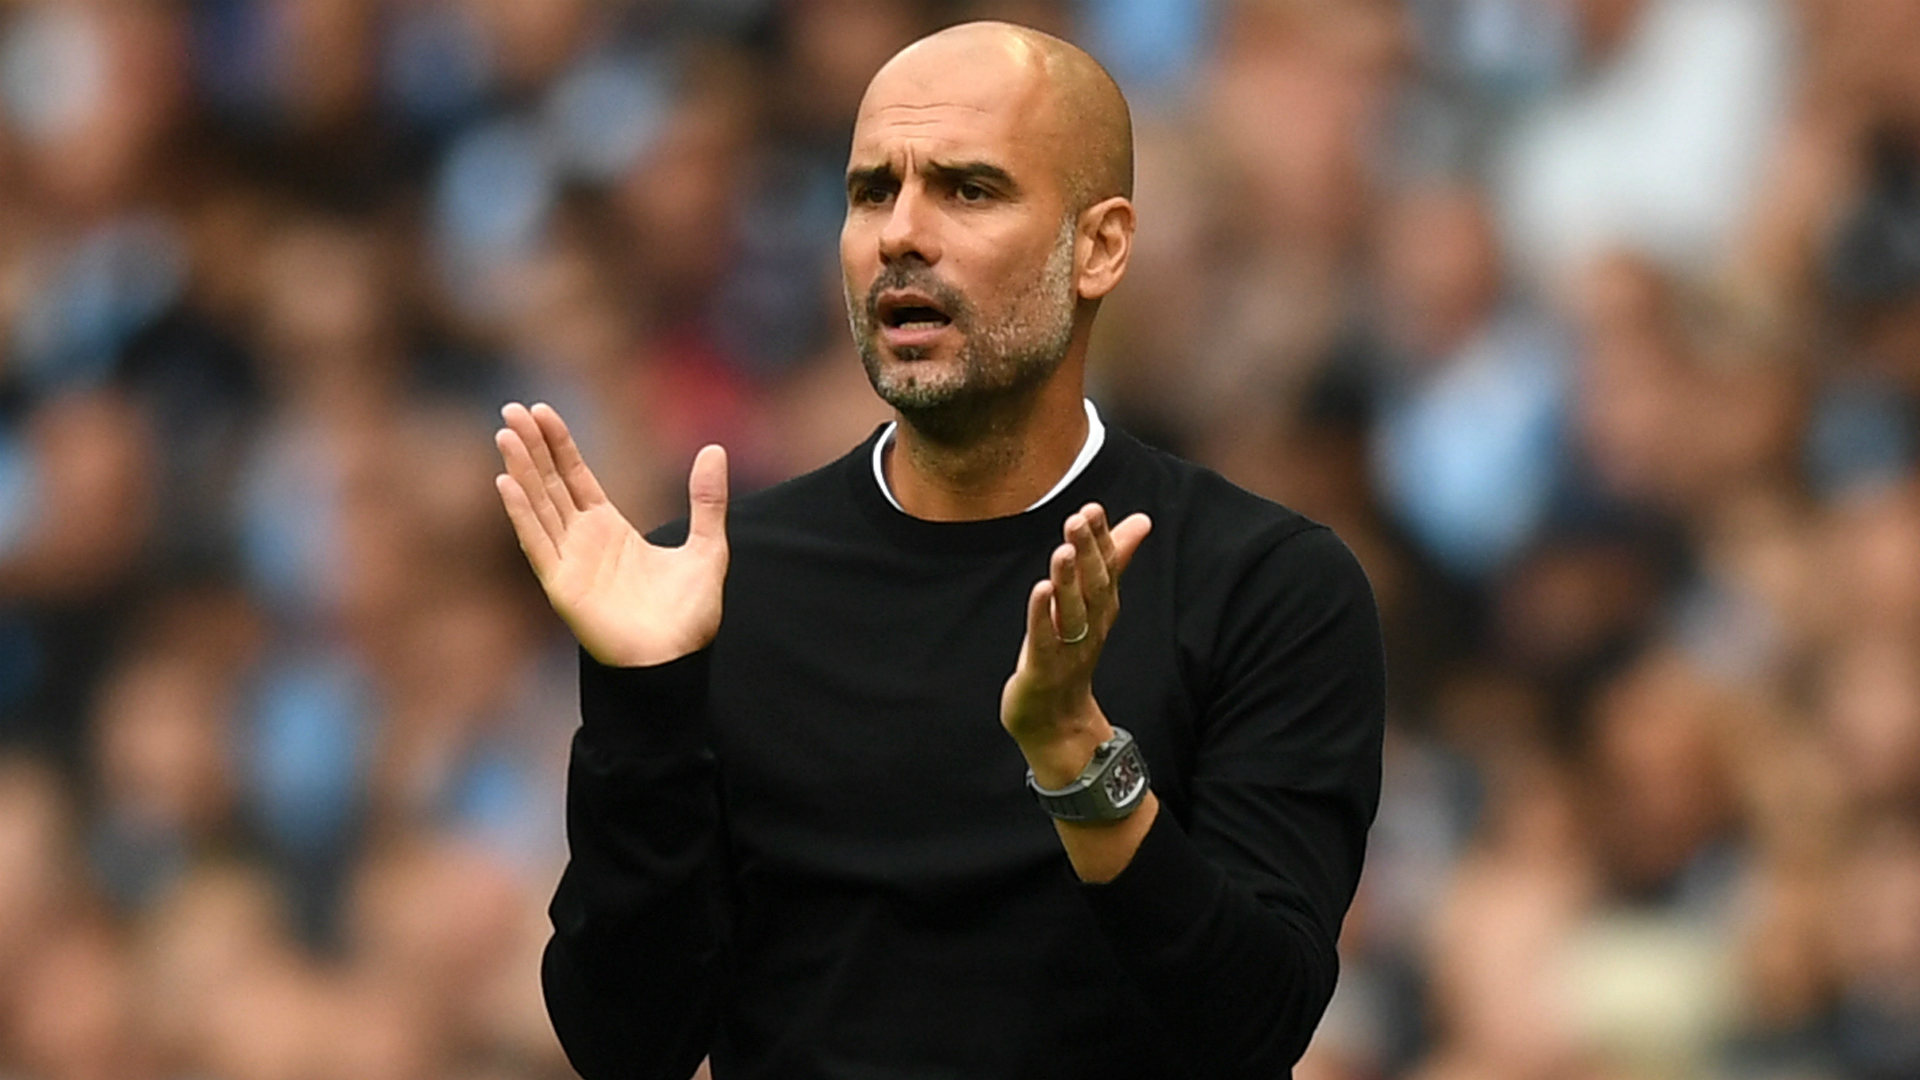 Manchester City boss Pep Guardiola defends Leroy Sane over body language criticism